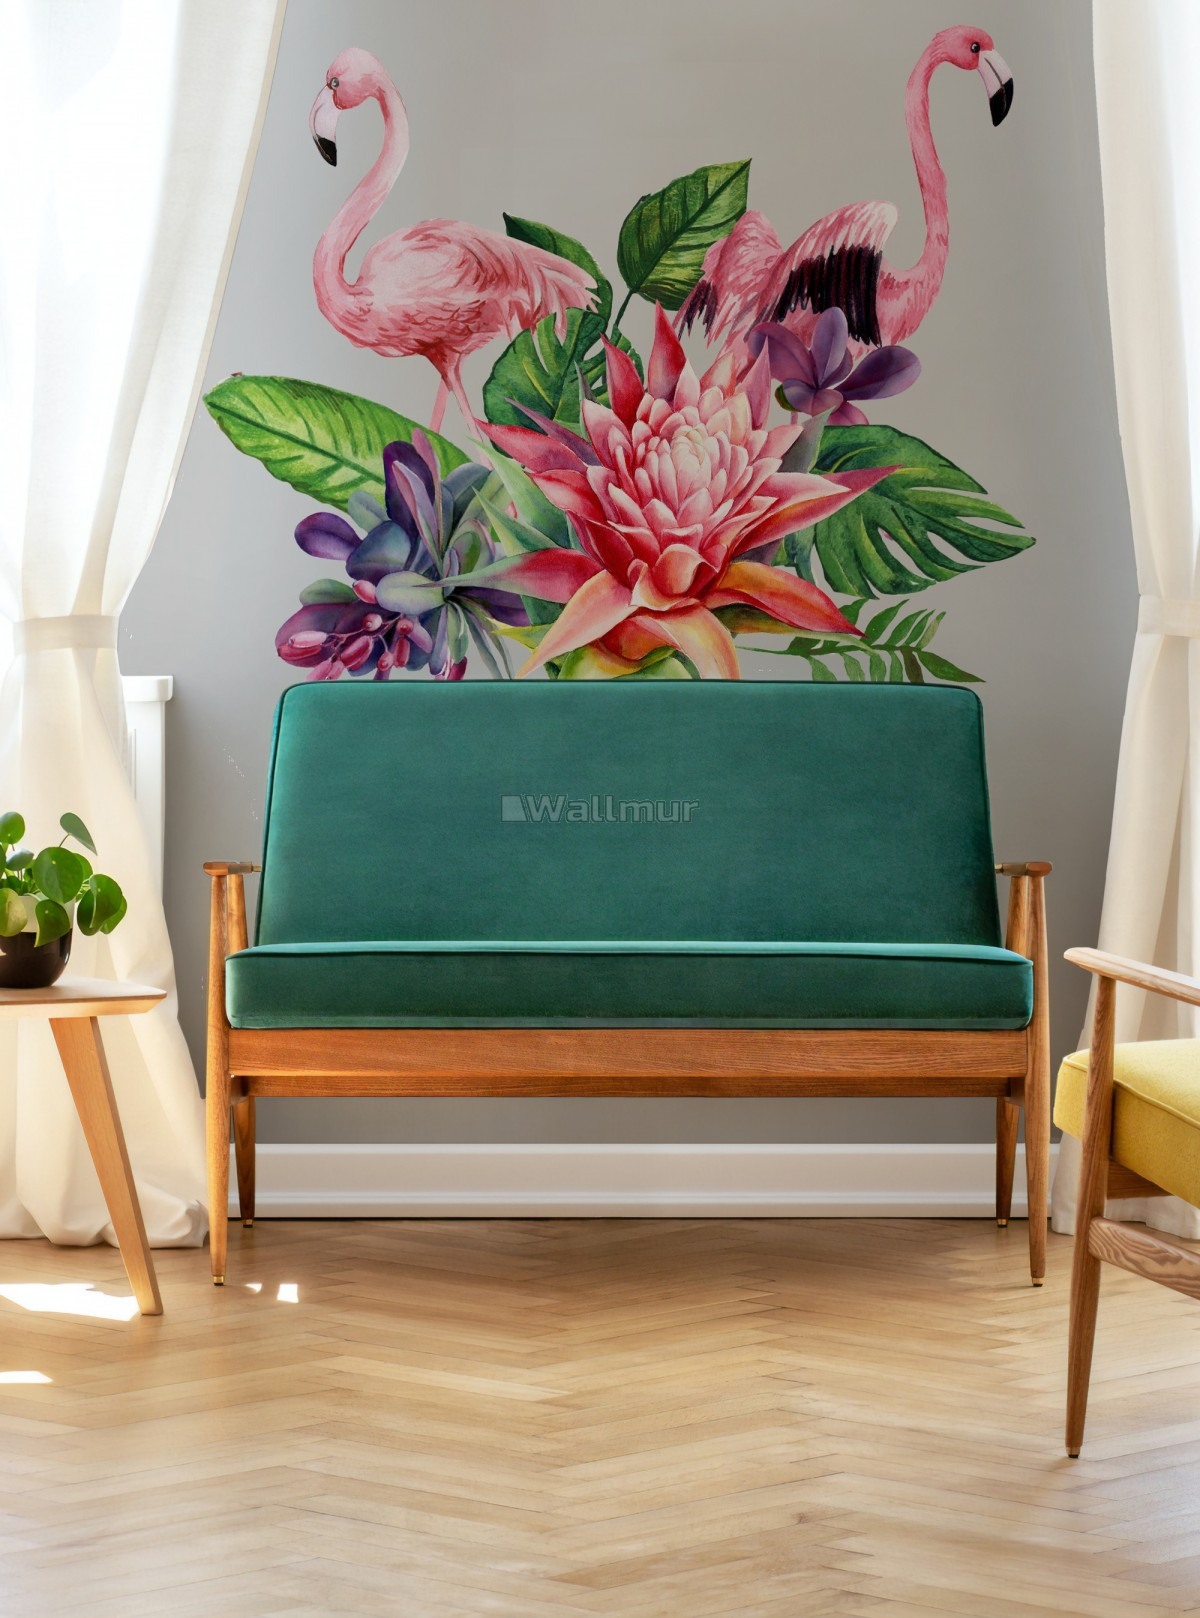 Tropical Protea Floral with Flamingo Wall Decal Sticker